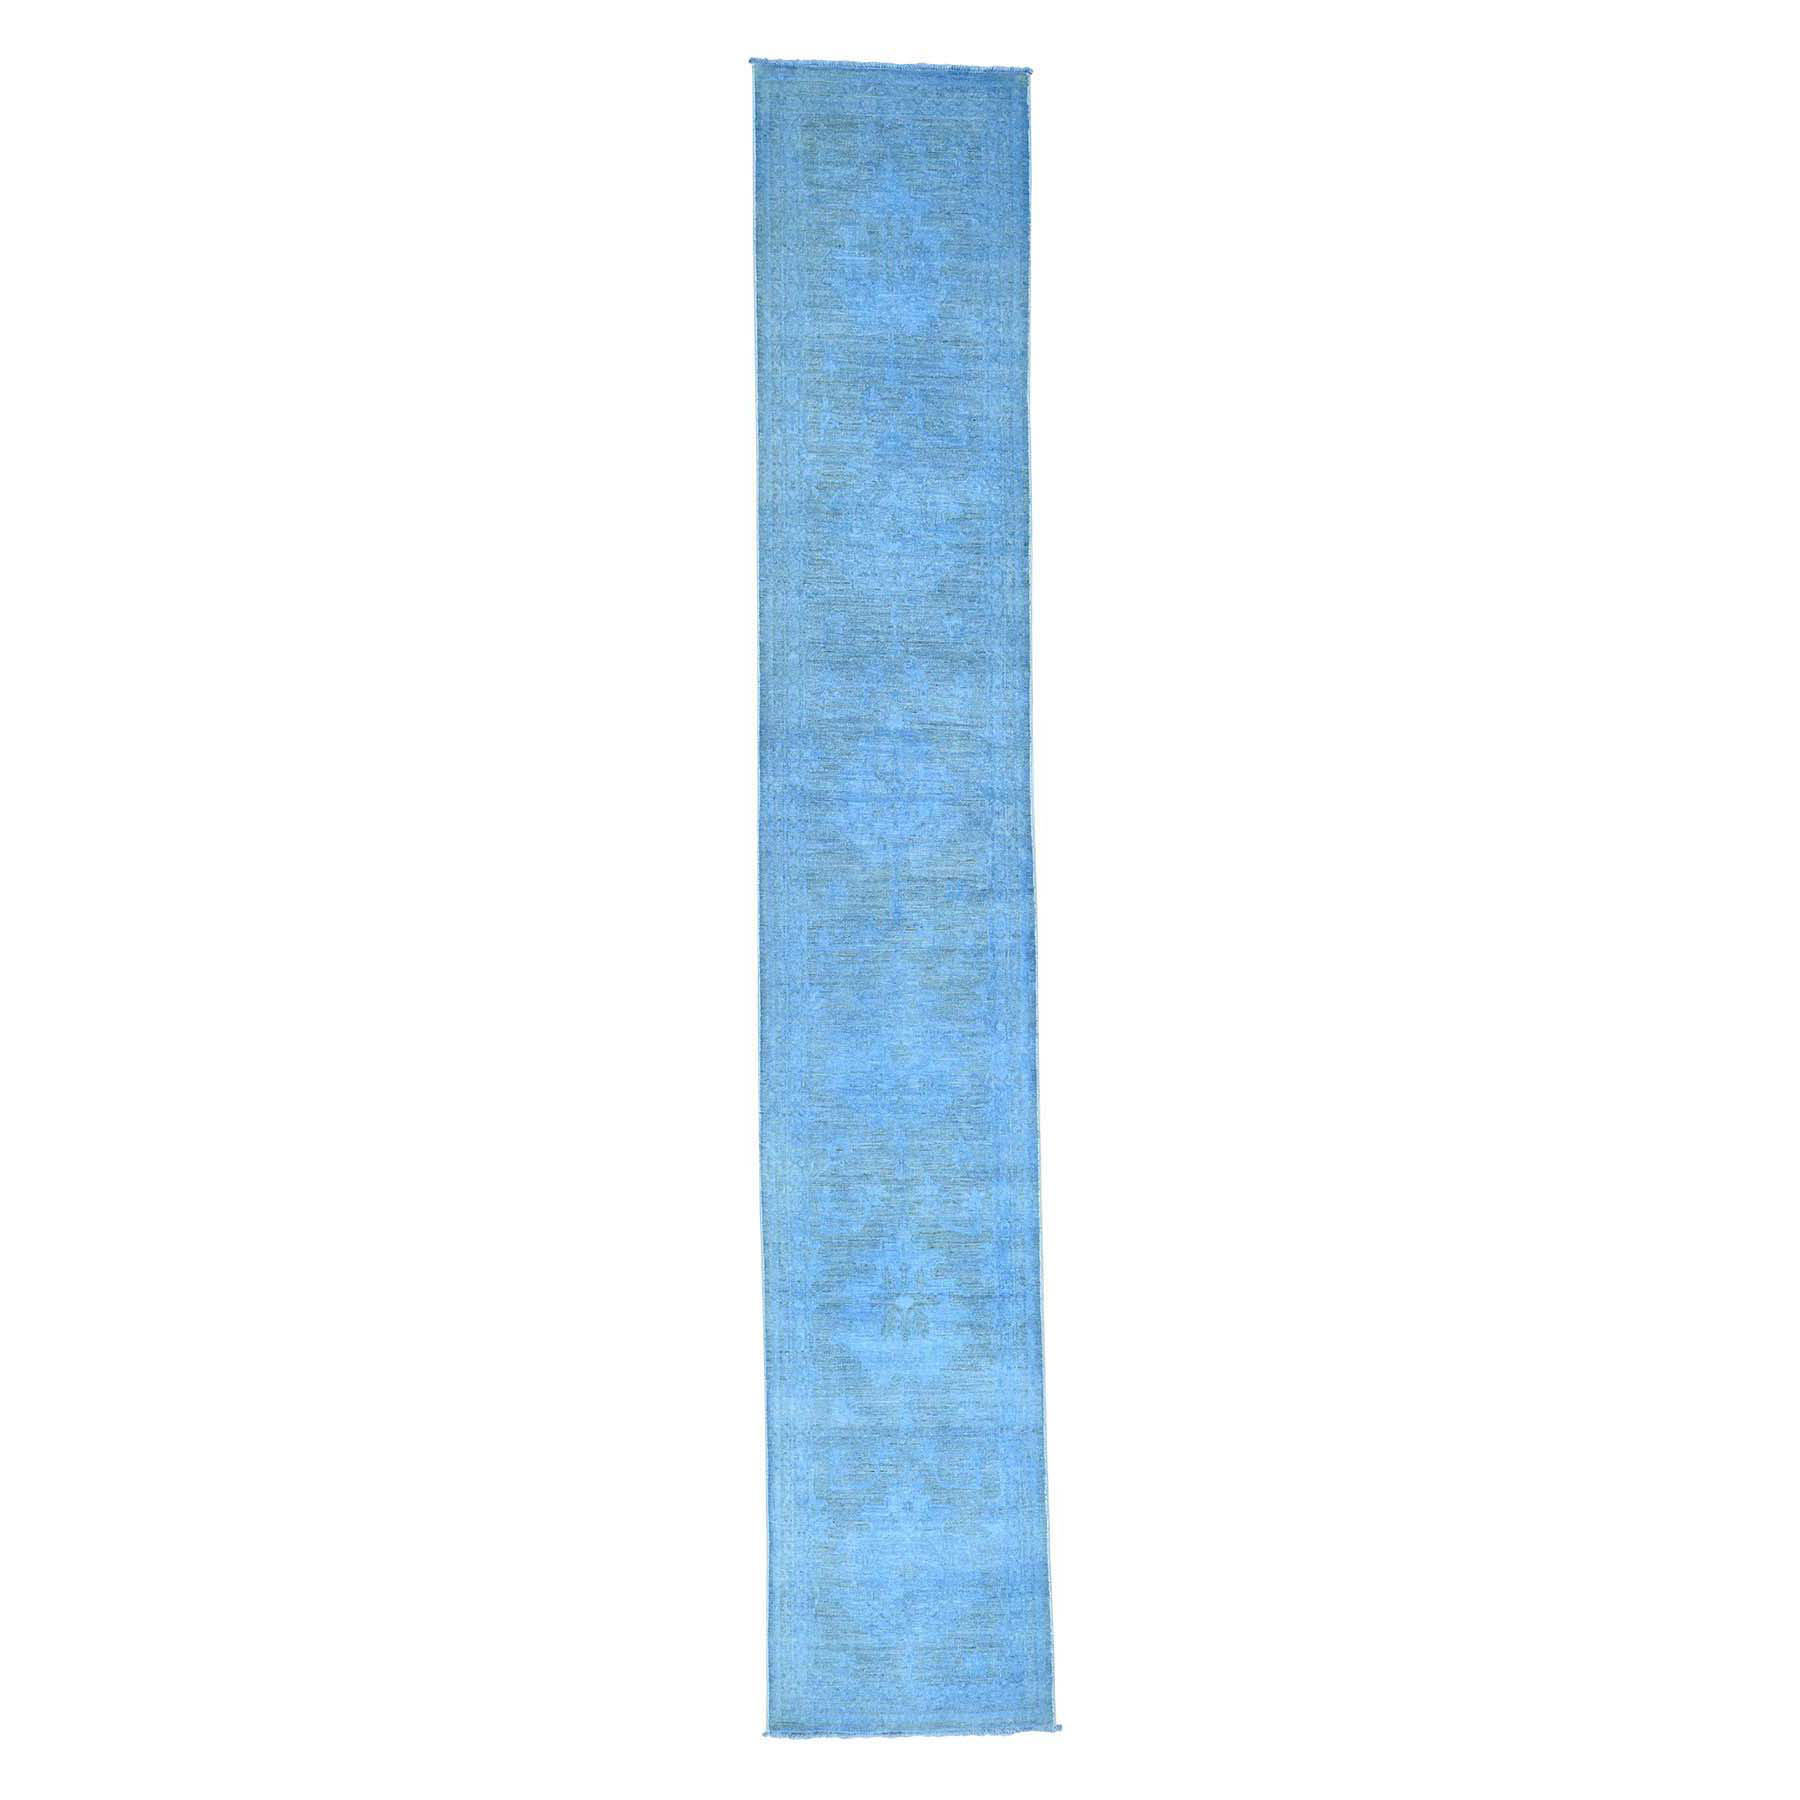 Fetneh Collection And Vintage Overdyed Collection Hand Knotted Blue Rug No: 170158